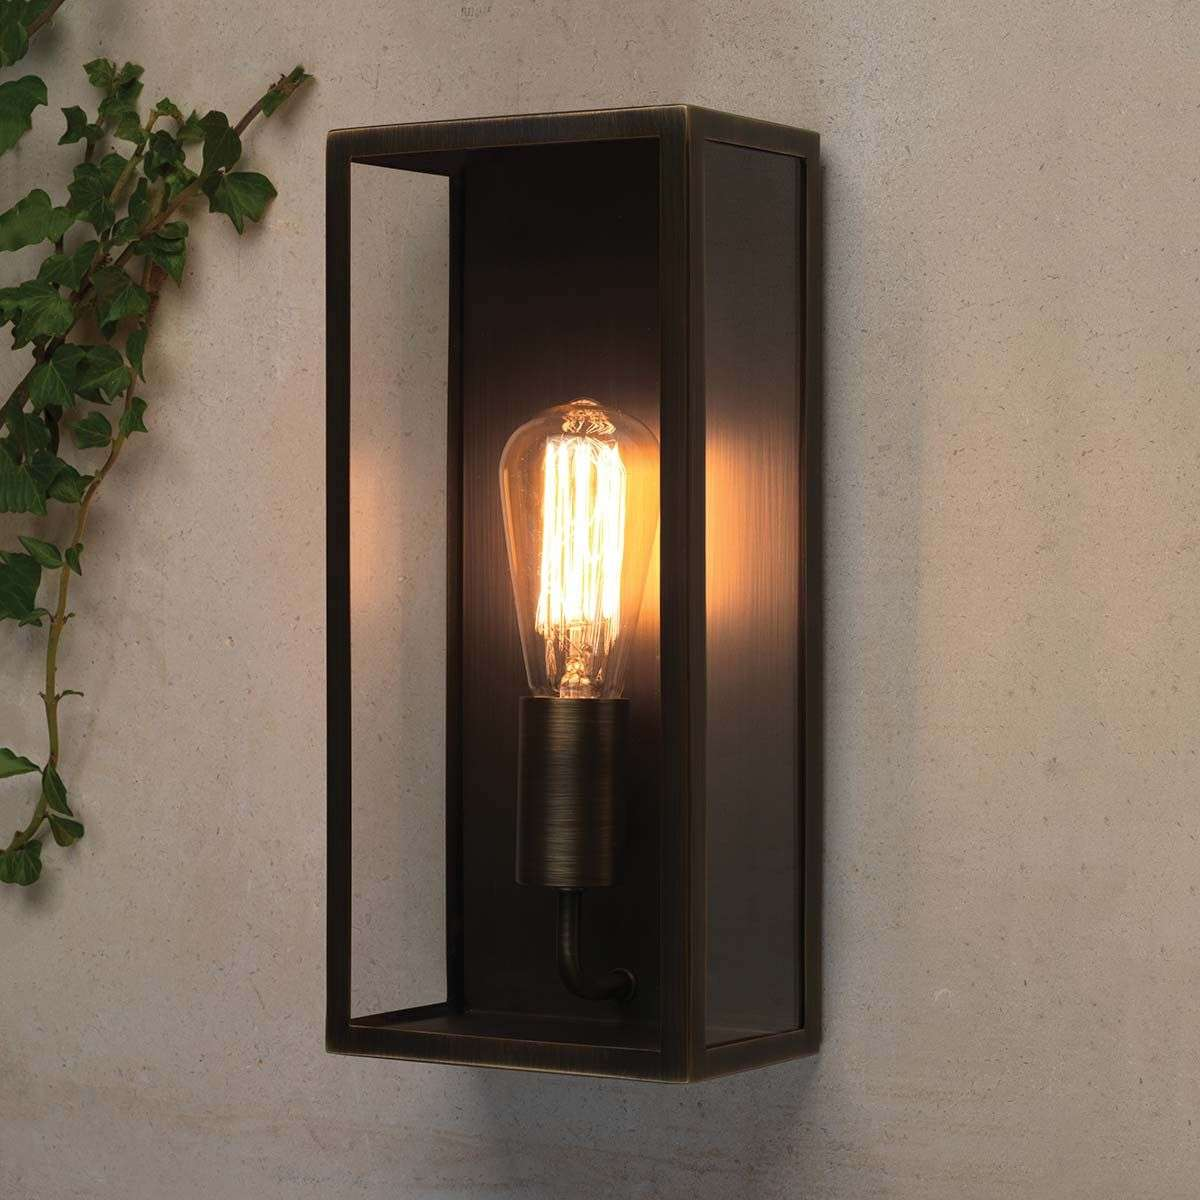 Messina Outside Wall Light Square-1020334-32